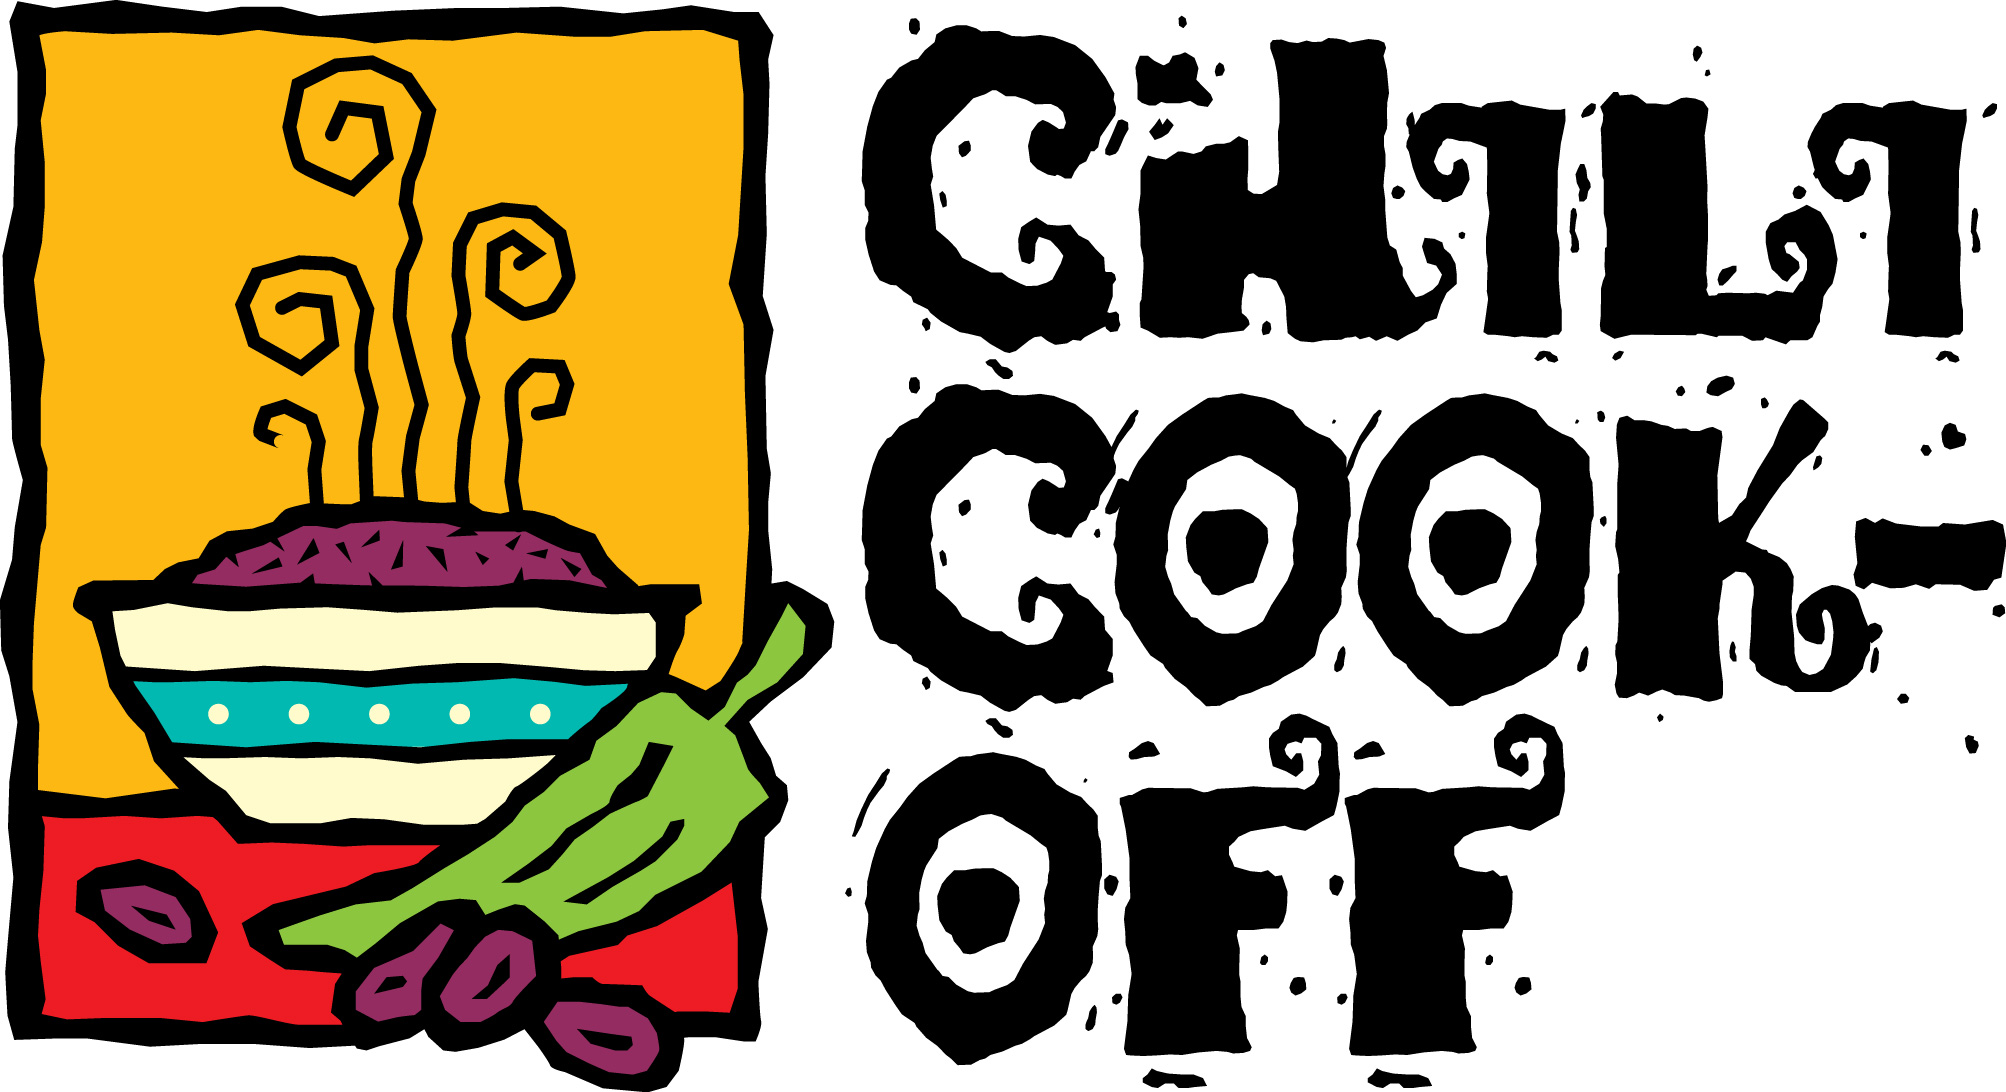 Cook off cilpart fancy. Chili clipart recipe